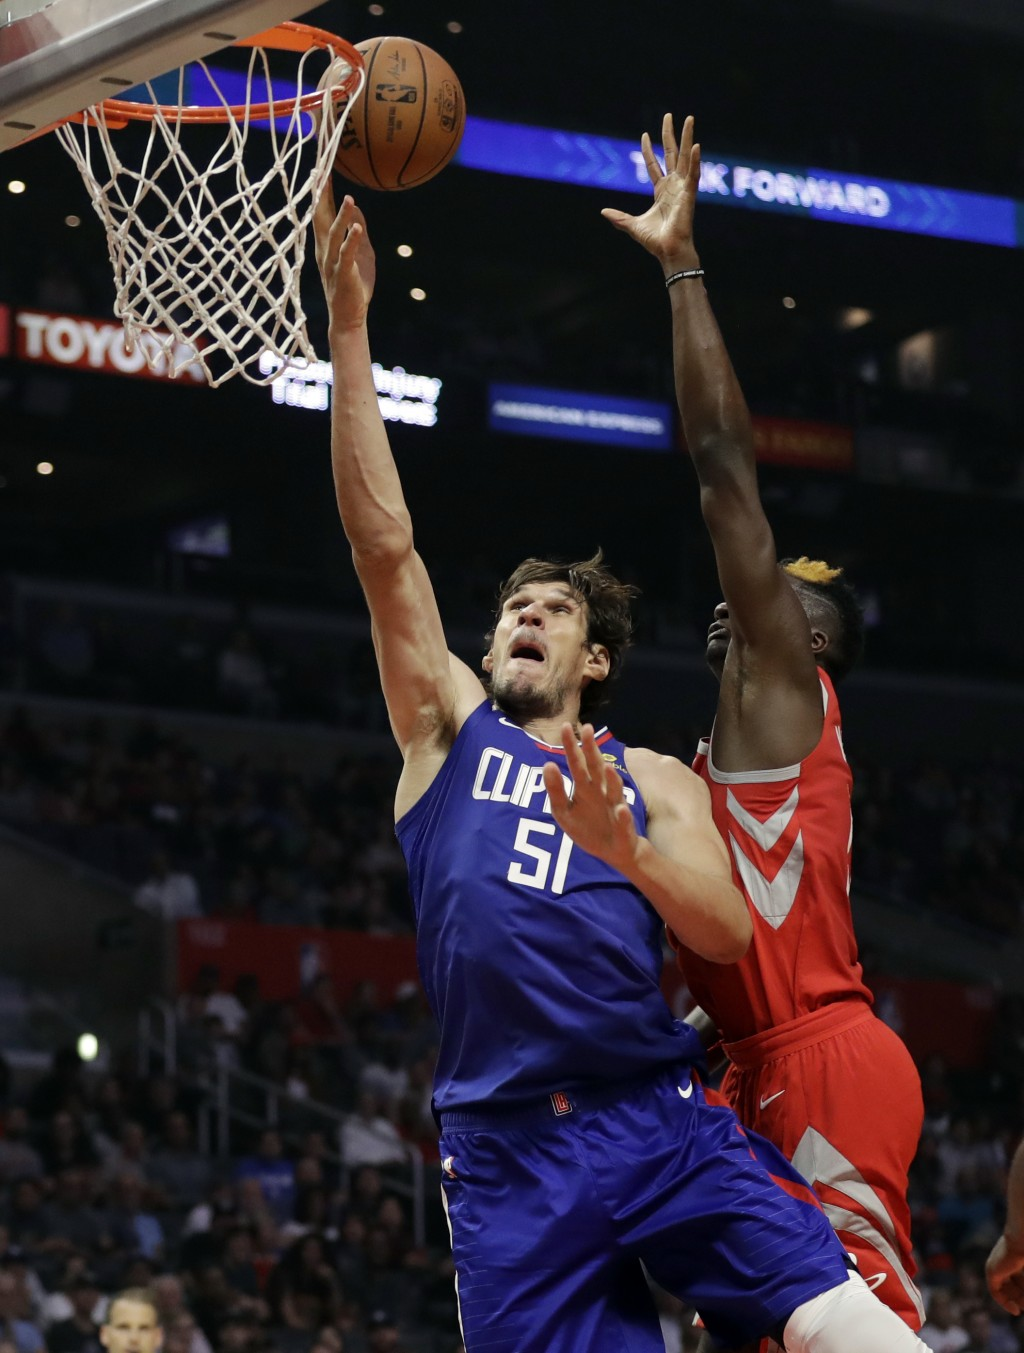 Los Angeles Clippers' Boban Marjanovic (51) drives past Houston Rockets' Clint Capela during the first half of an NBA basketball game Sunday, Oct. 21,